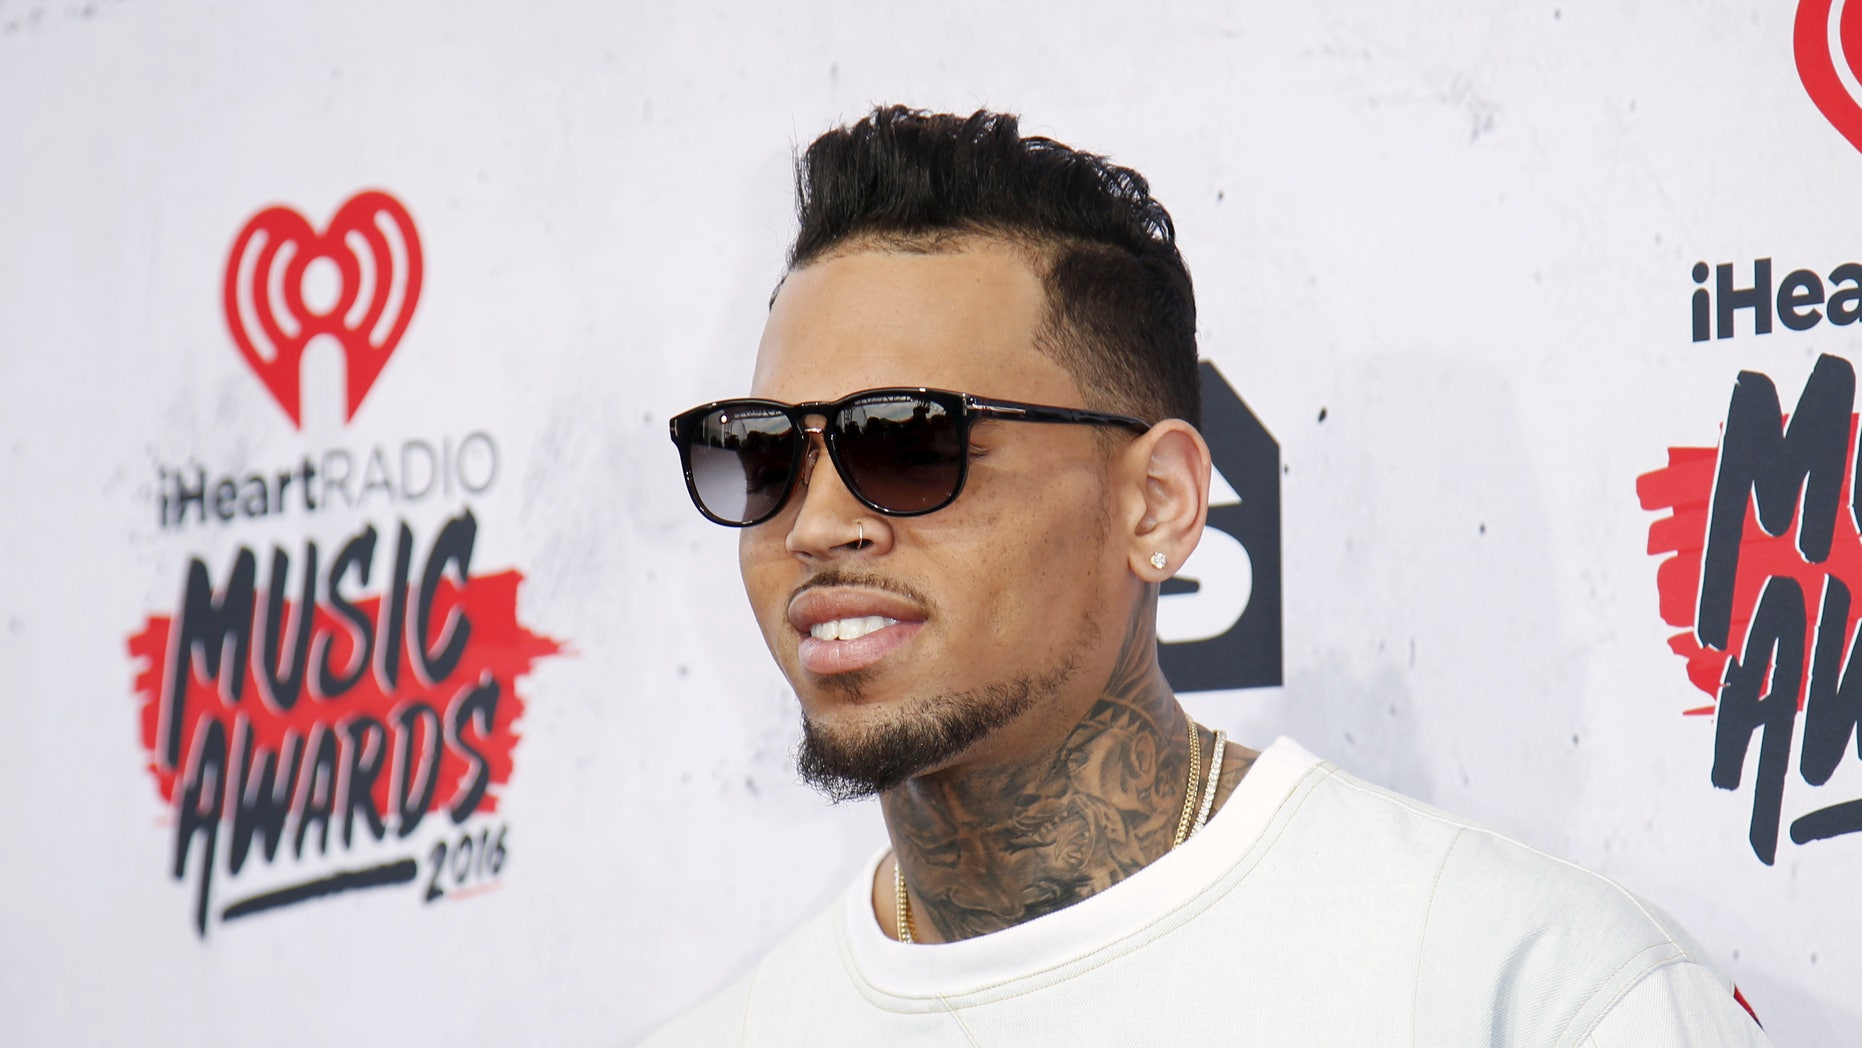 A lawyer for Chris Brown claims no drugs or guns were found at the singer's house.